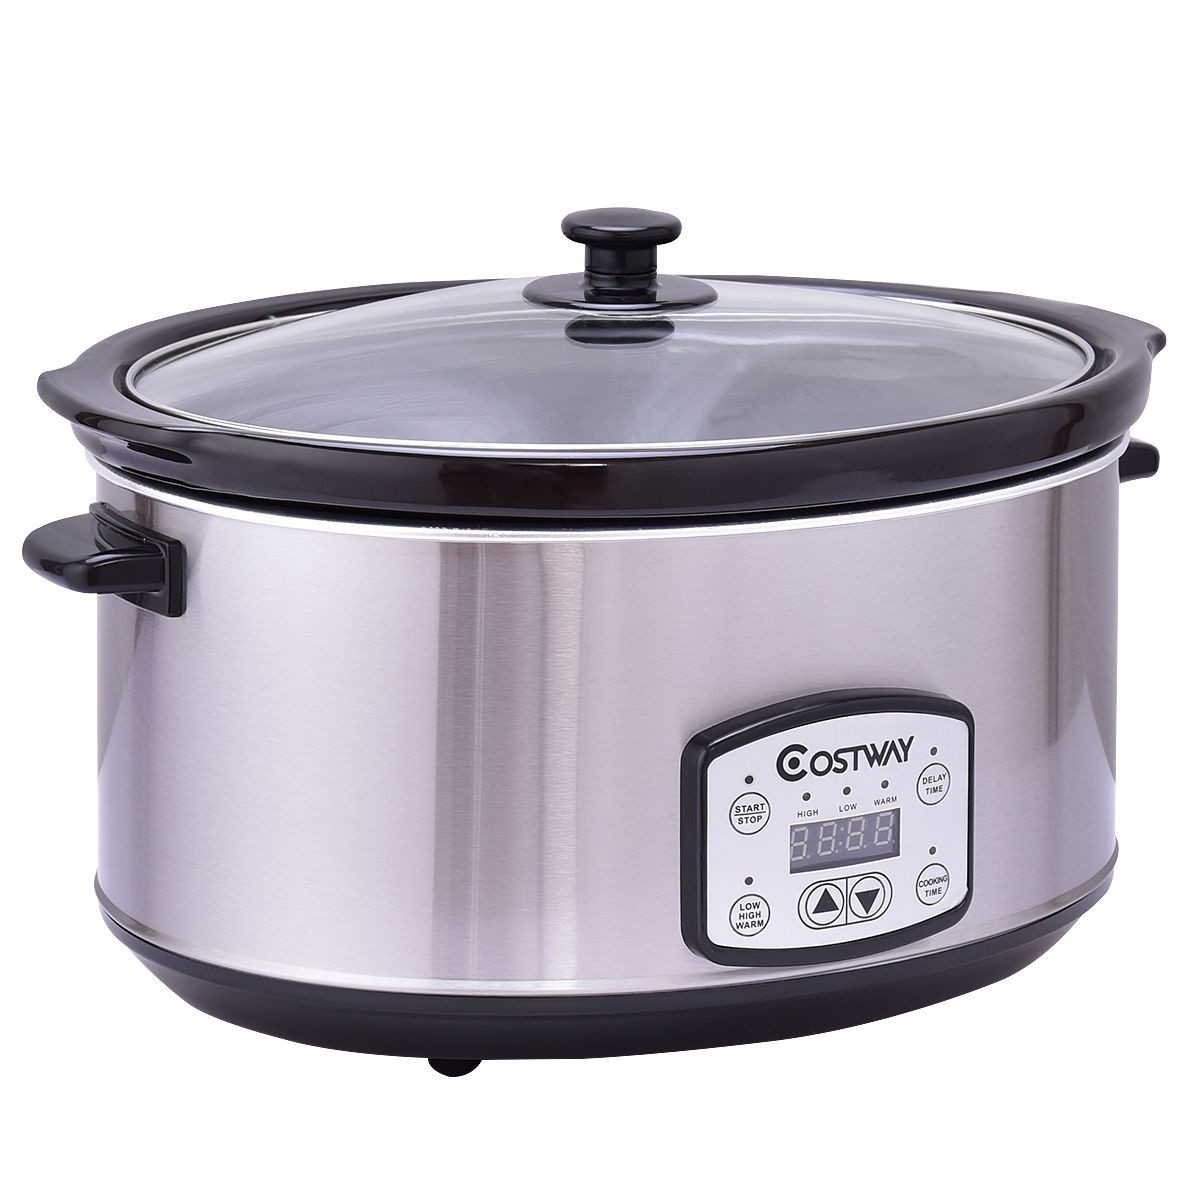 7 Quart Electric Oval Stainless Steel Slow Cooker by